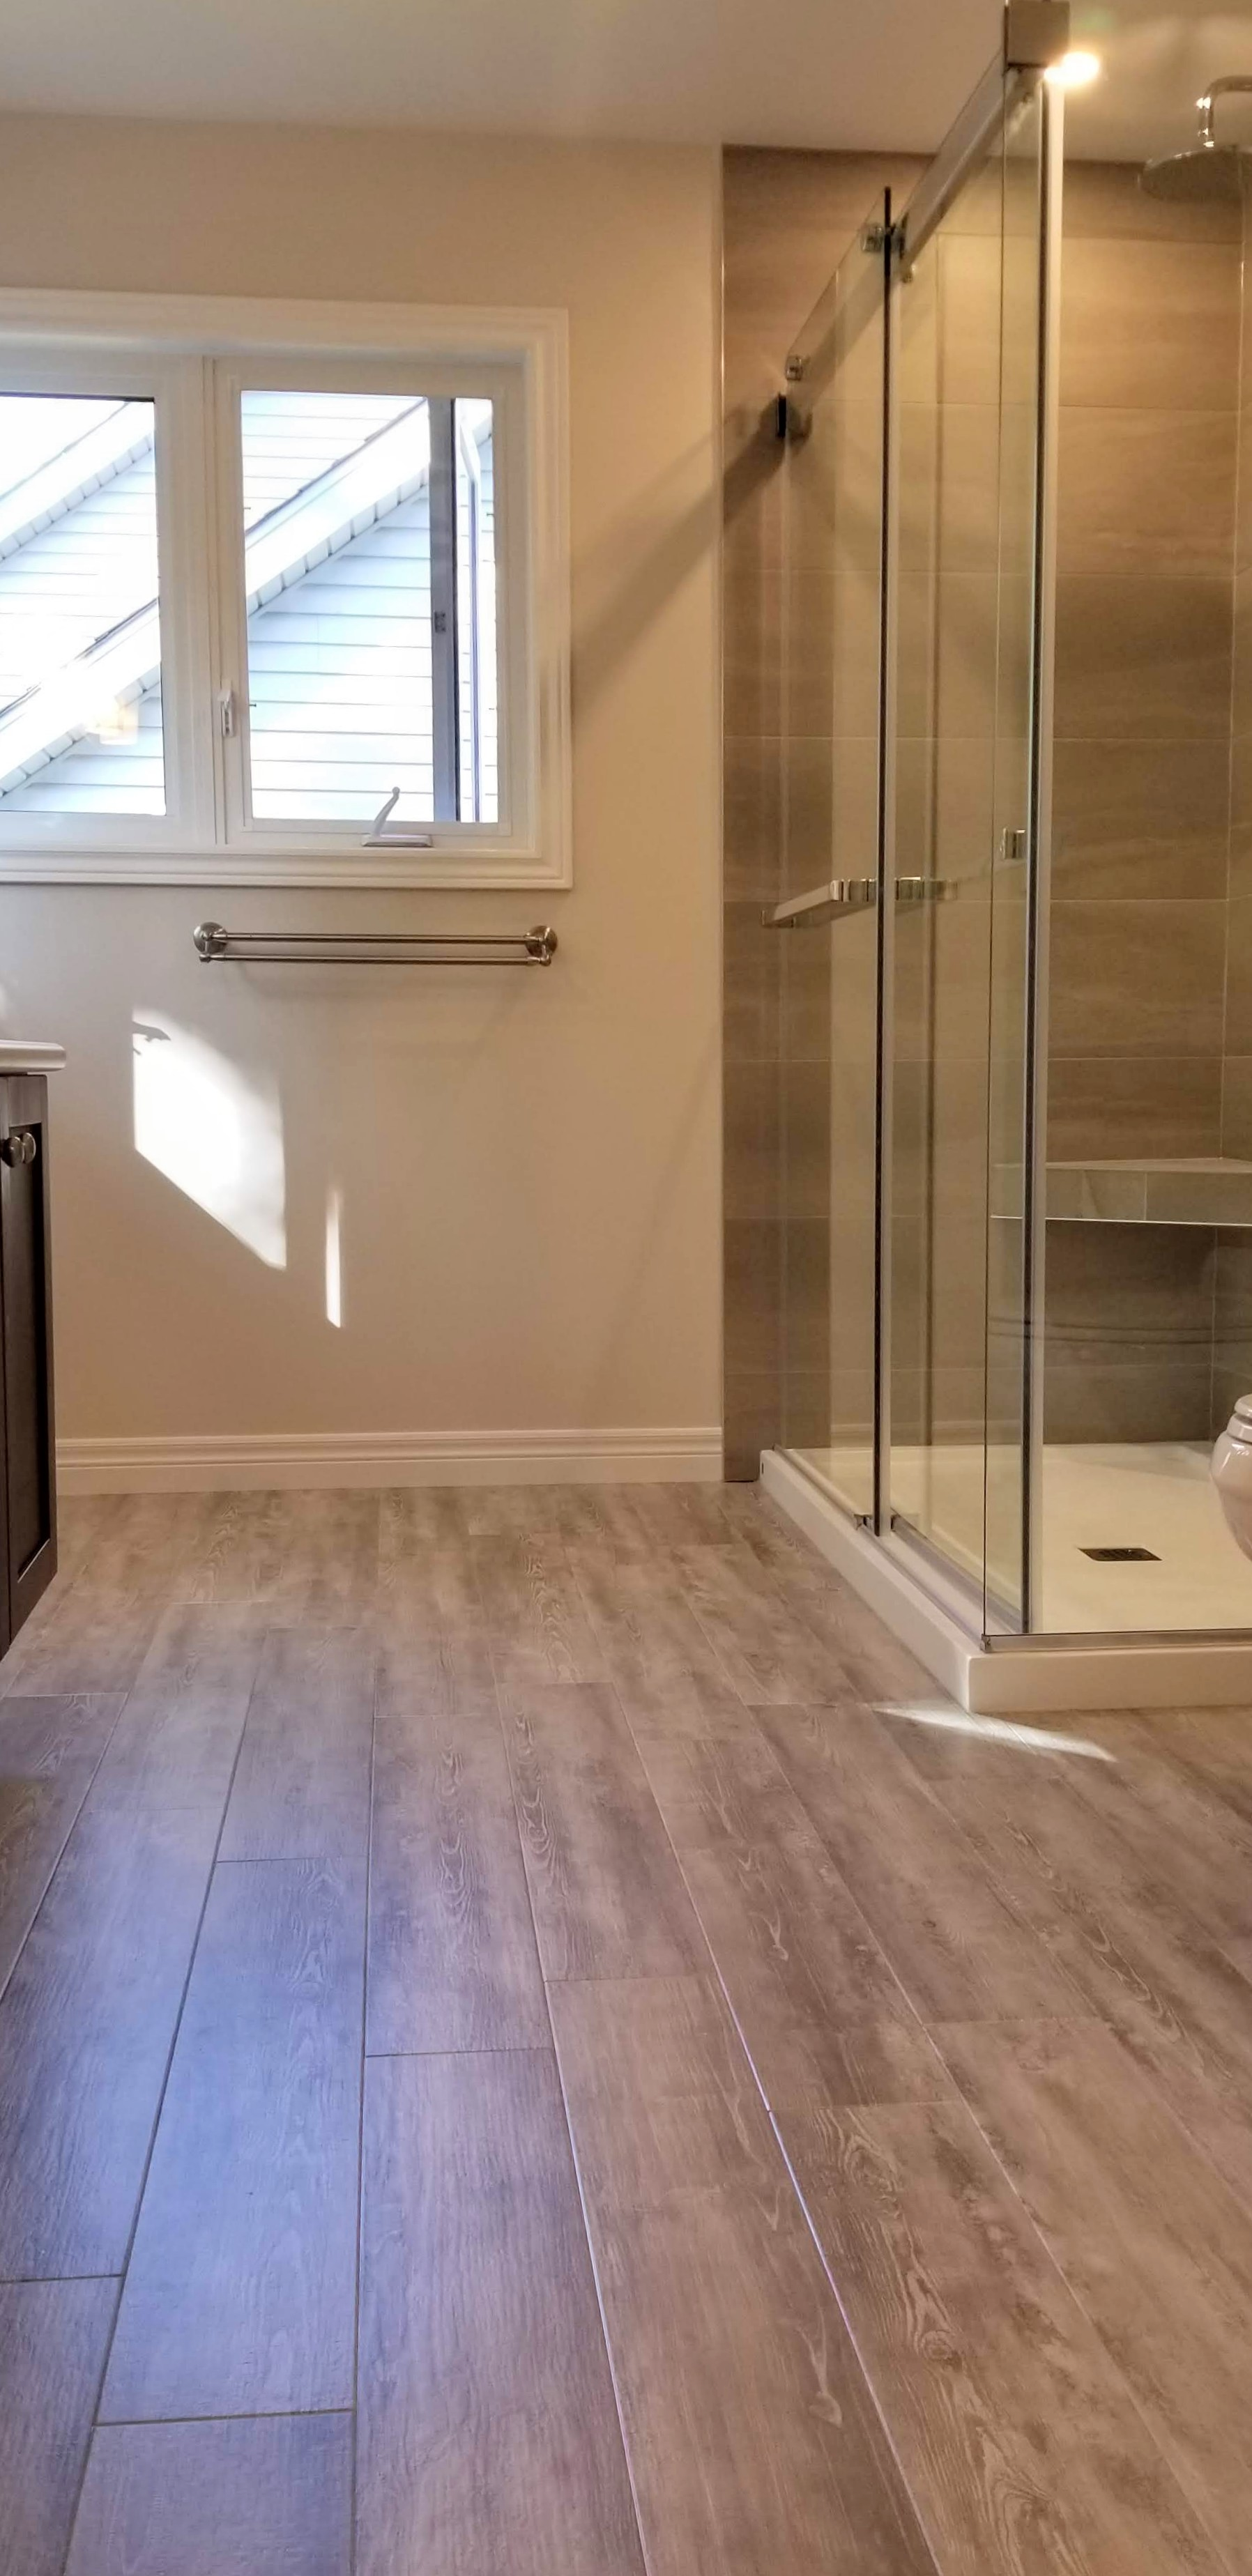 Ensuite bathroom floor was replaced with vinyl plank flooring by Germano Creative Interior Contracting Ltd.